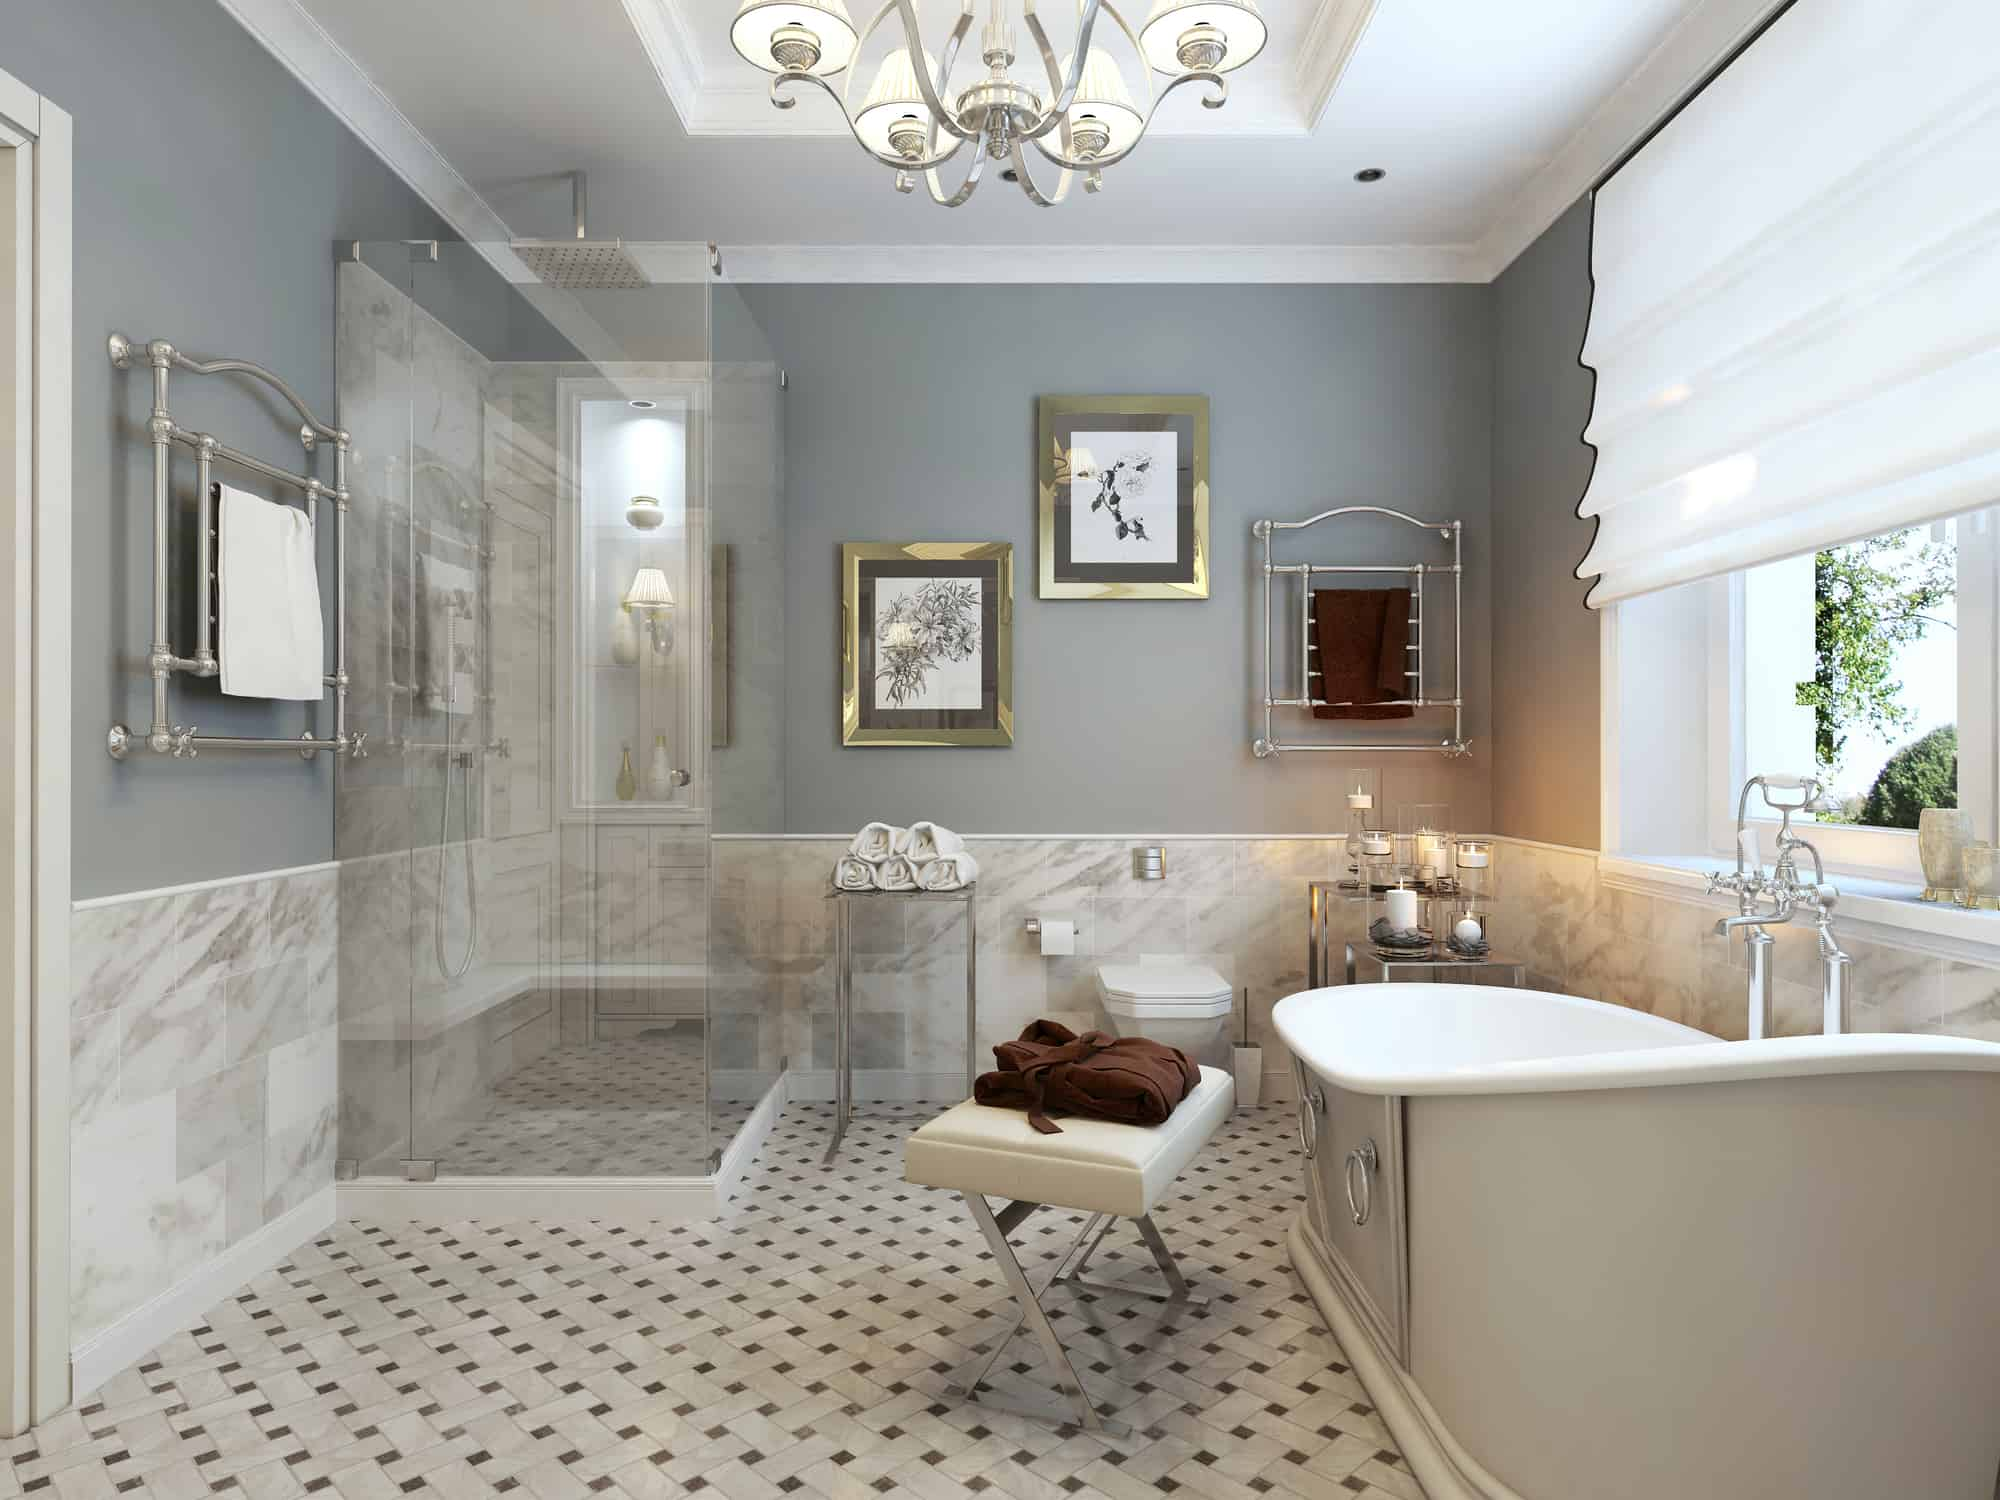 Primer for bathroom ceiling - Things To Consider When You Paint Your Bathroom